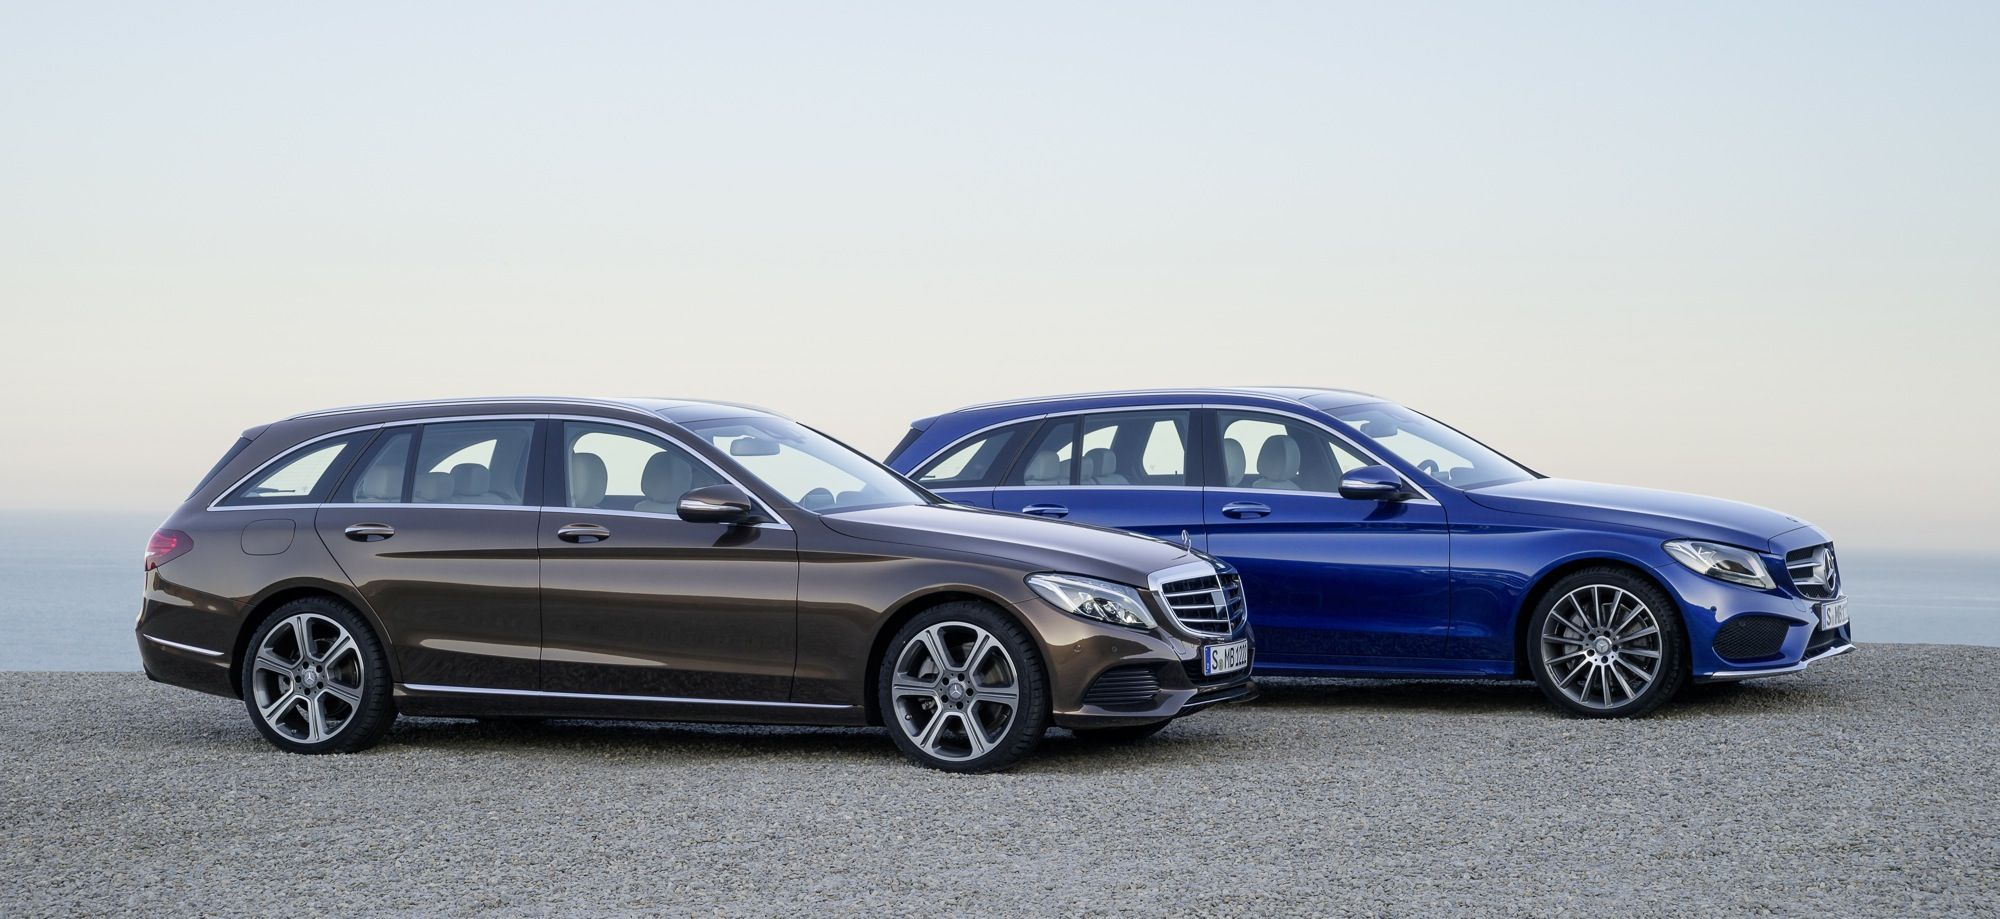 Mercedes benz c class estate c300 bluetec hybrid and c250 bluetec amg